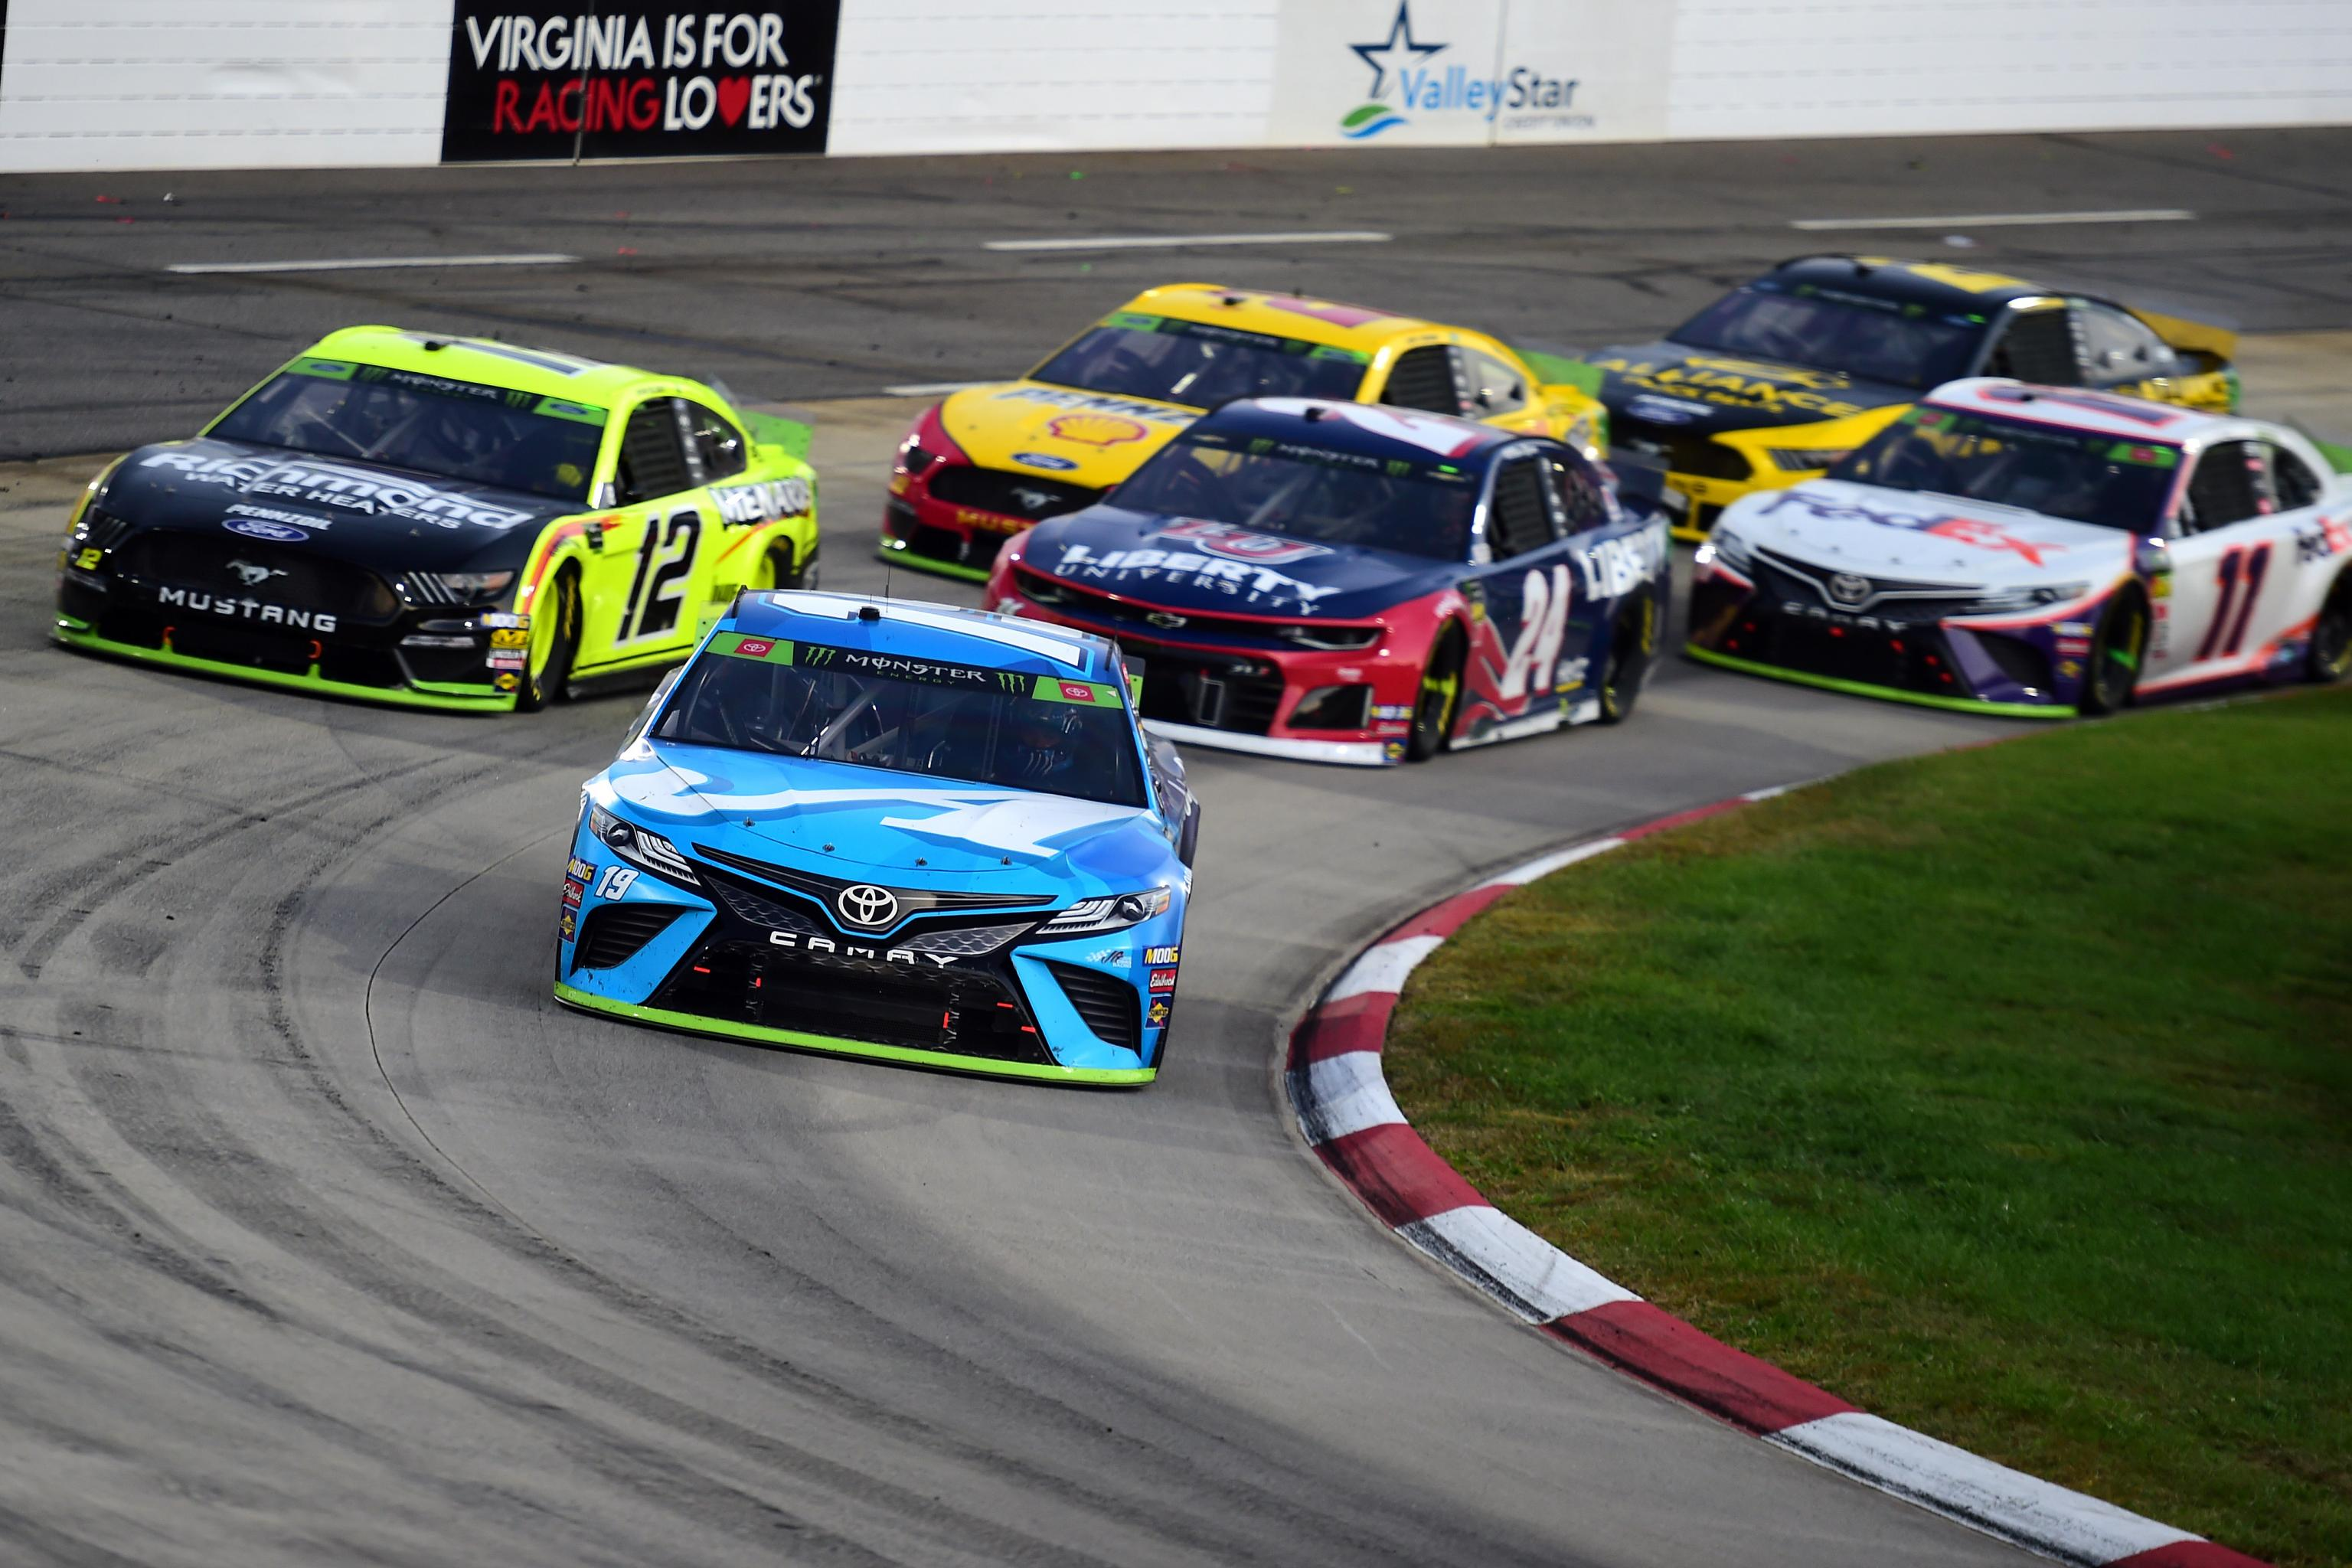 Vegas insiders betting odds nascar sports betting sites best promotions